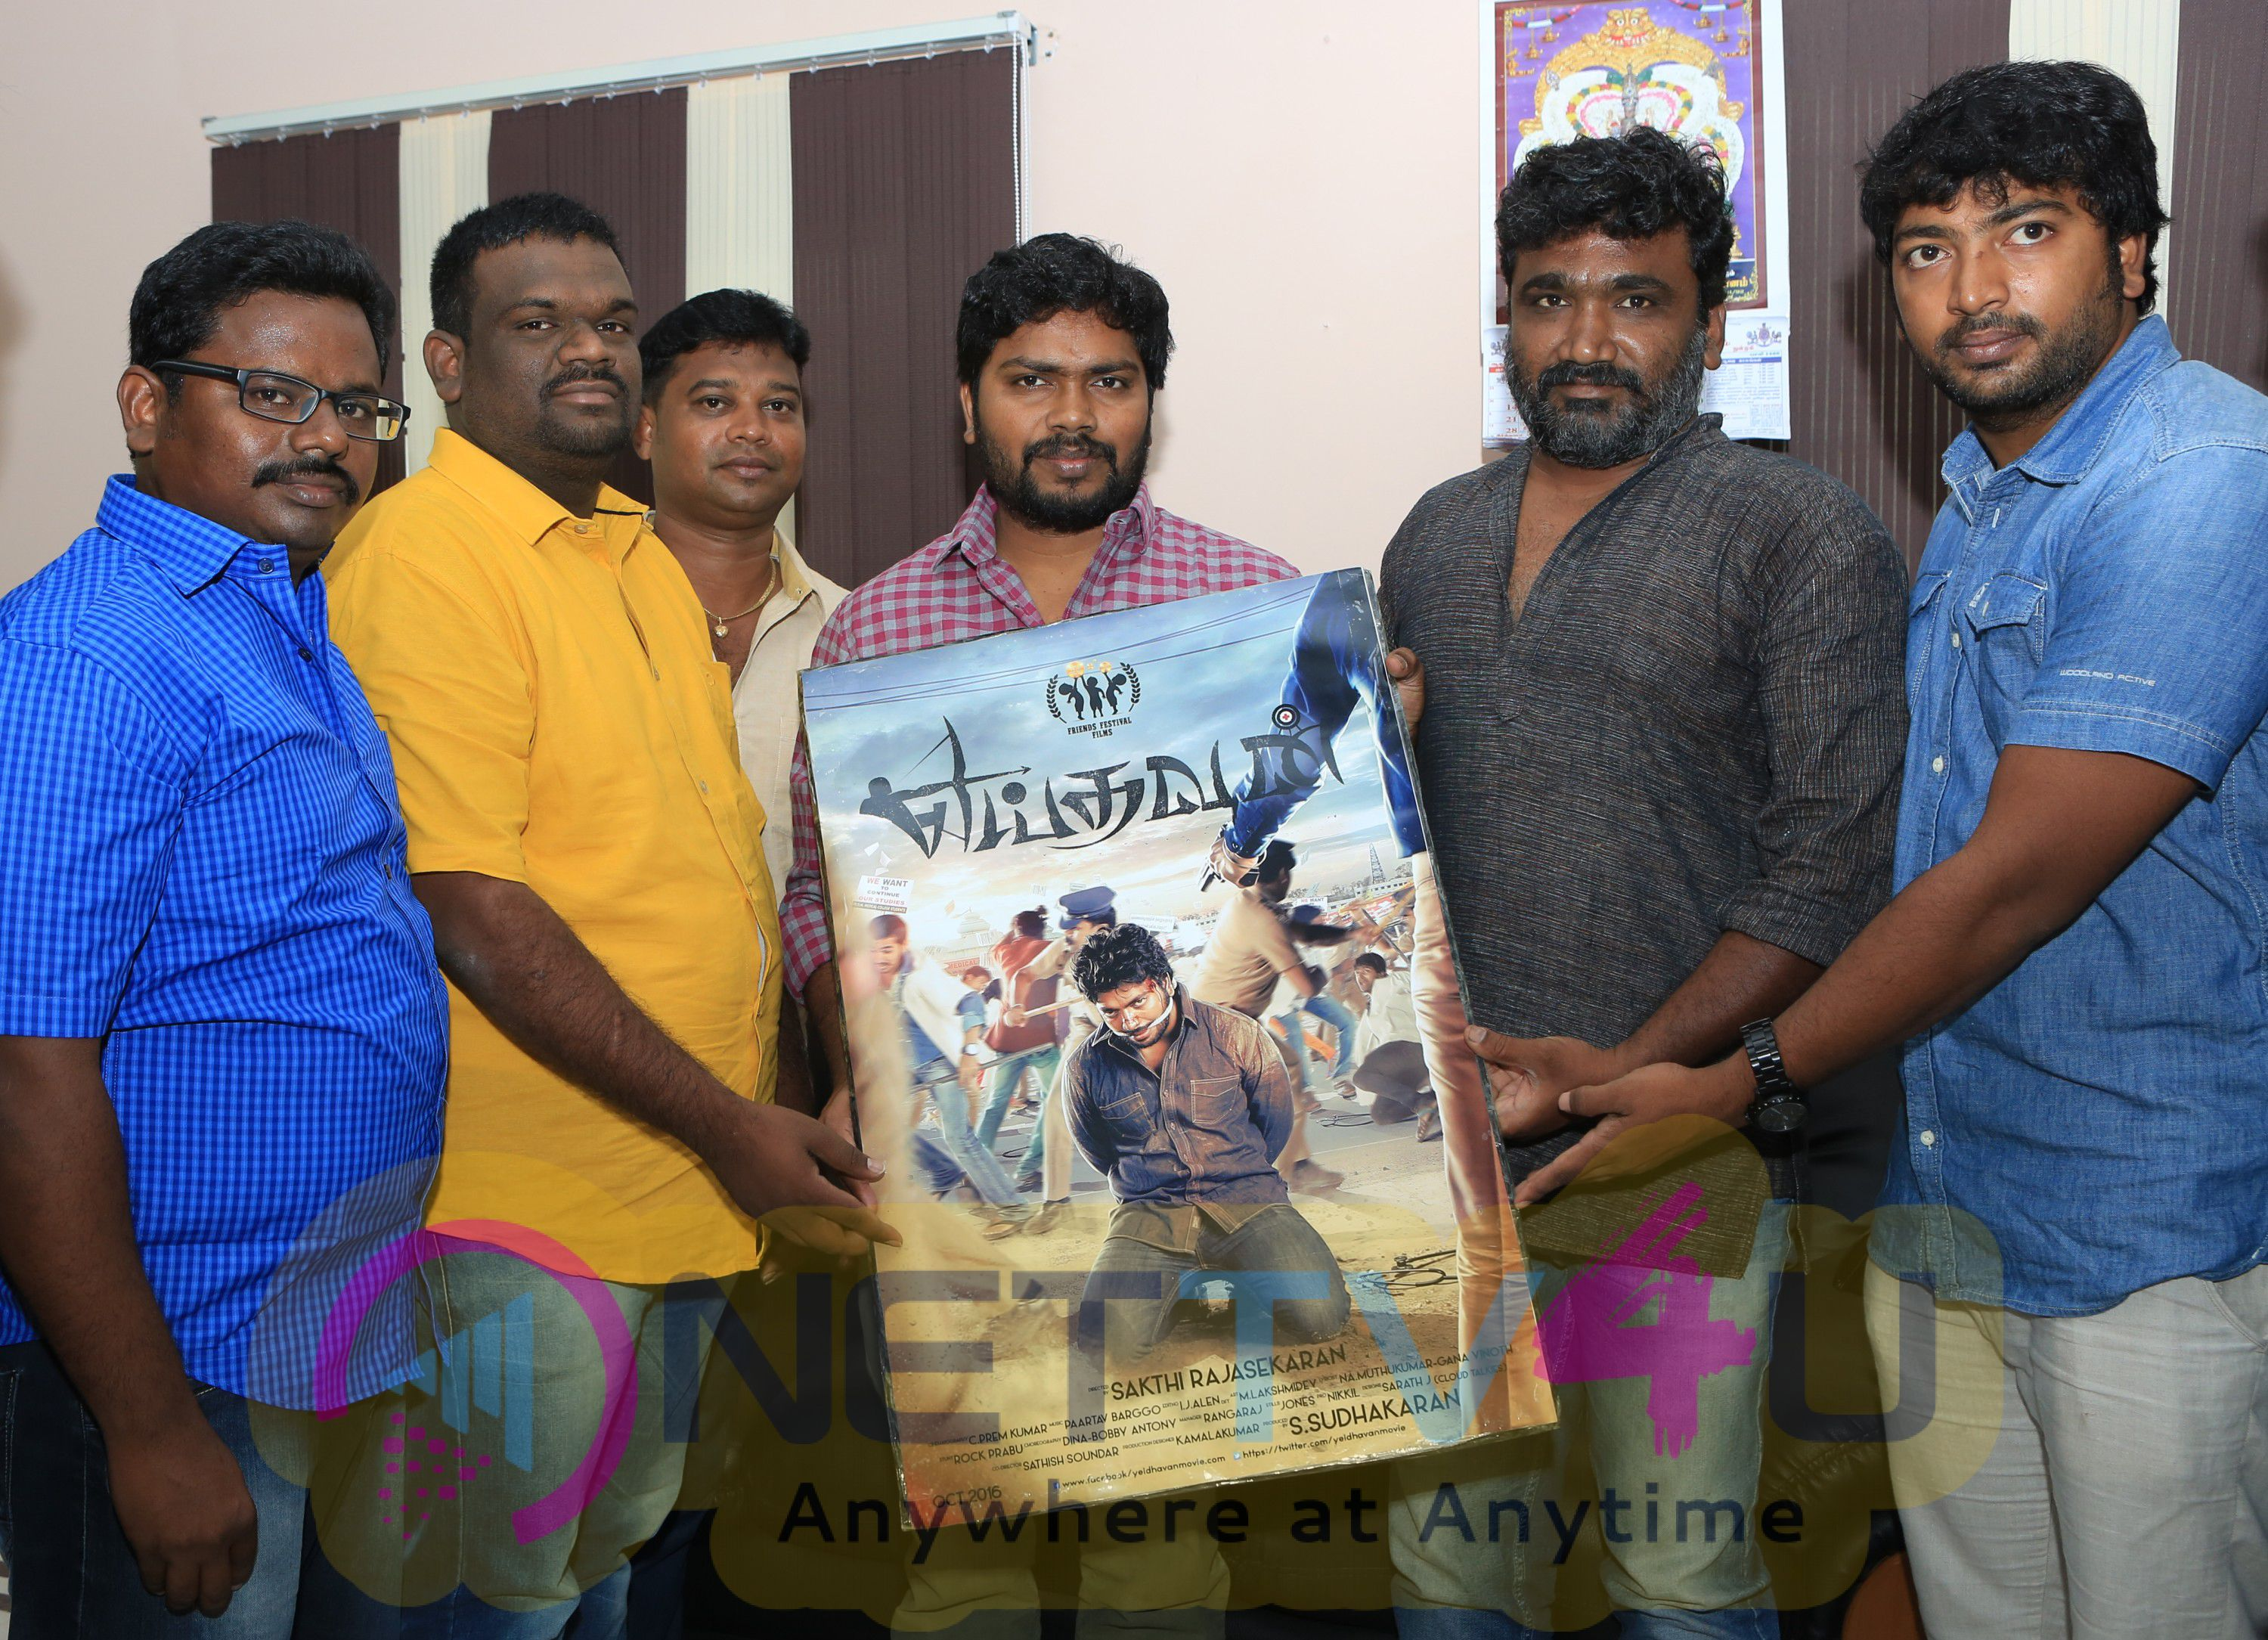 Photos Of Yeidhavan Movie First Look Poster Launched By Pa Ranjith